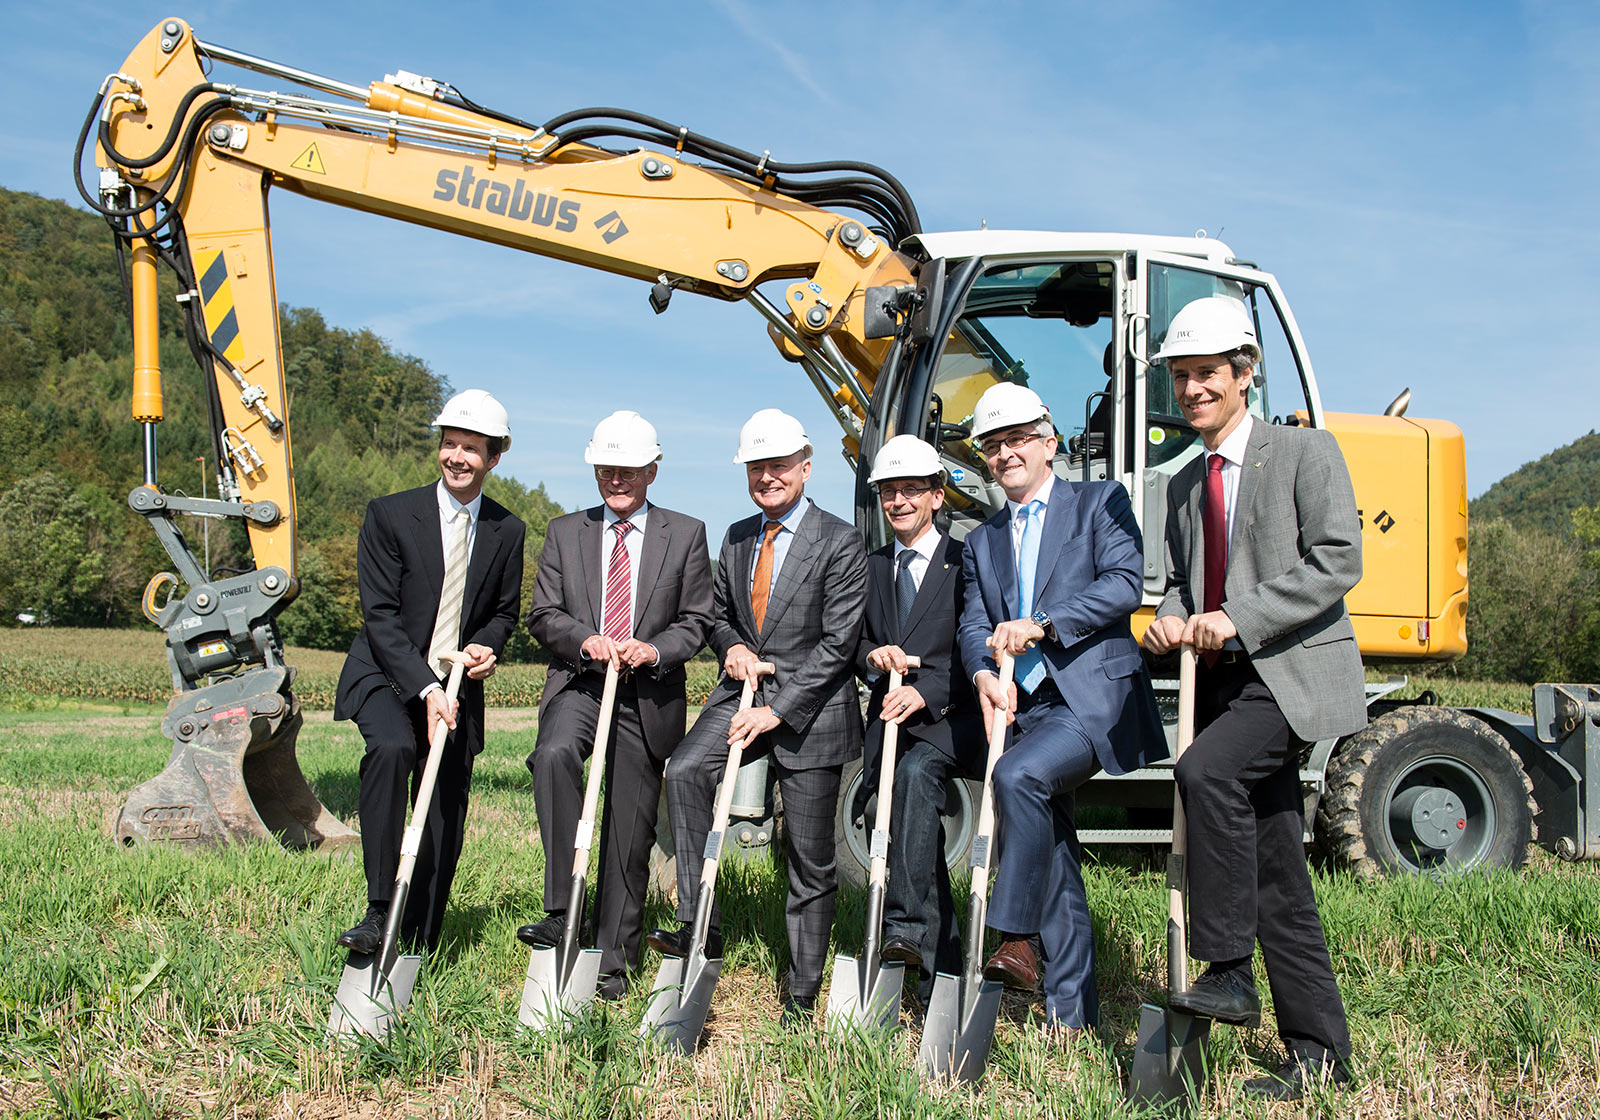 The management of IWC Schaffhausen and politicians during the groundbreaking ceremony for the new production building. Photo: PHOTOPRESS/Ennio Leanza